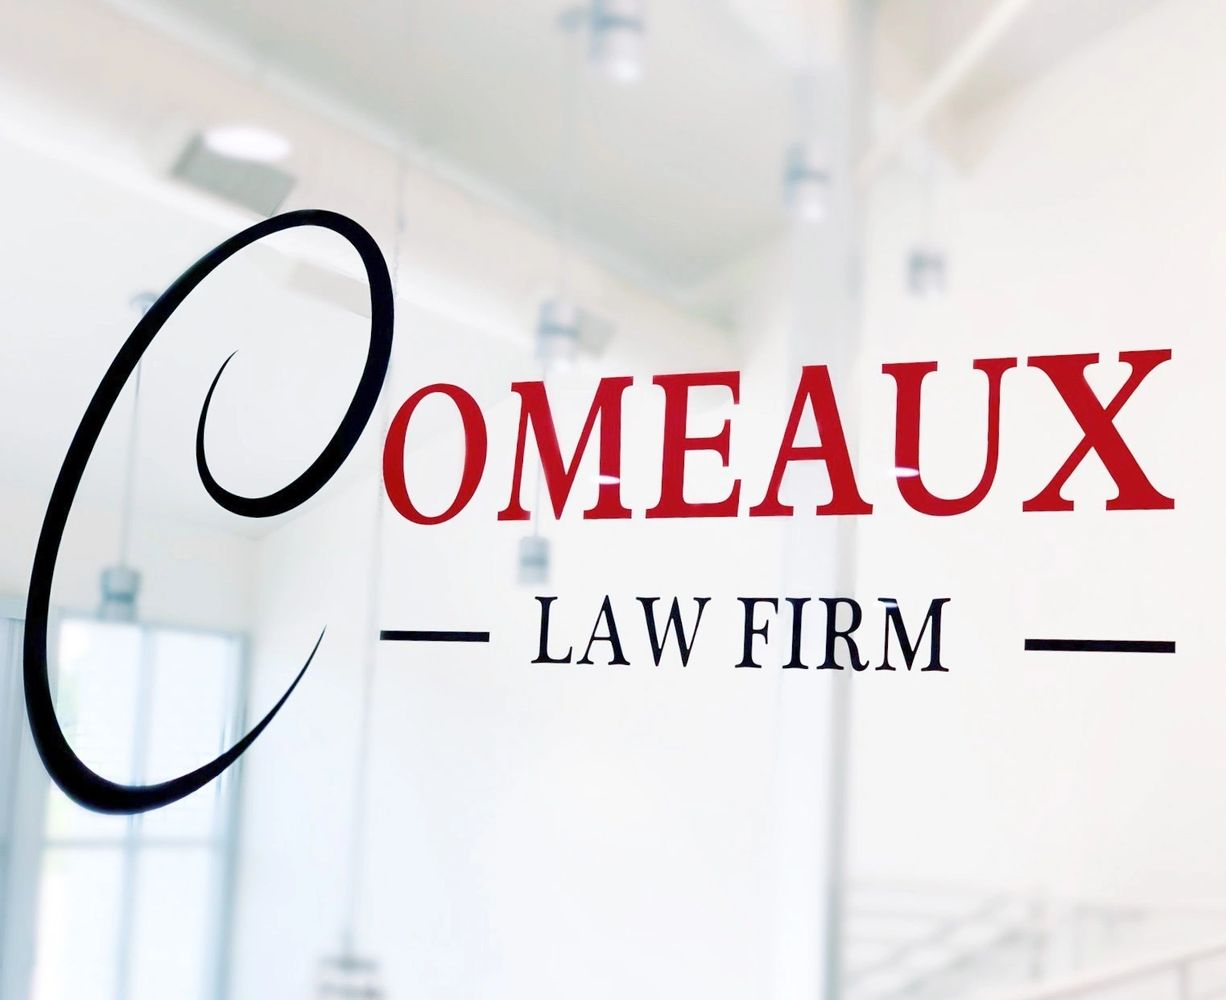 Personal Injury Lawyer Comeaux Law Firm Todd Comeaux